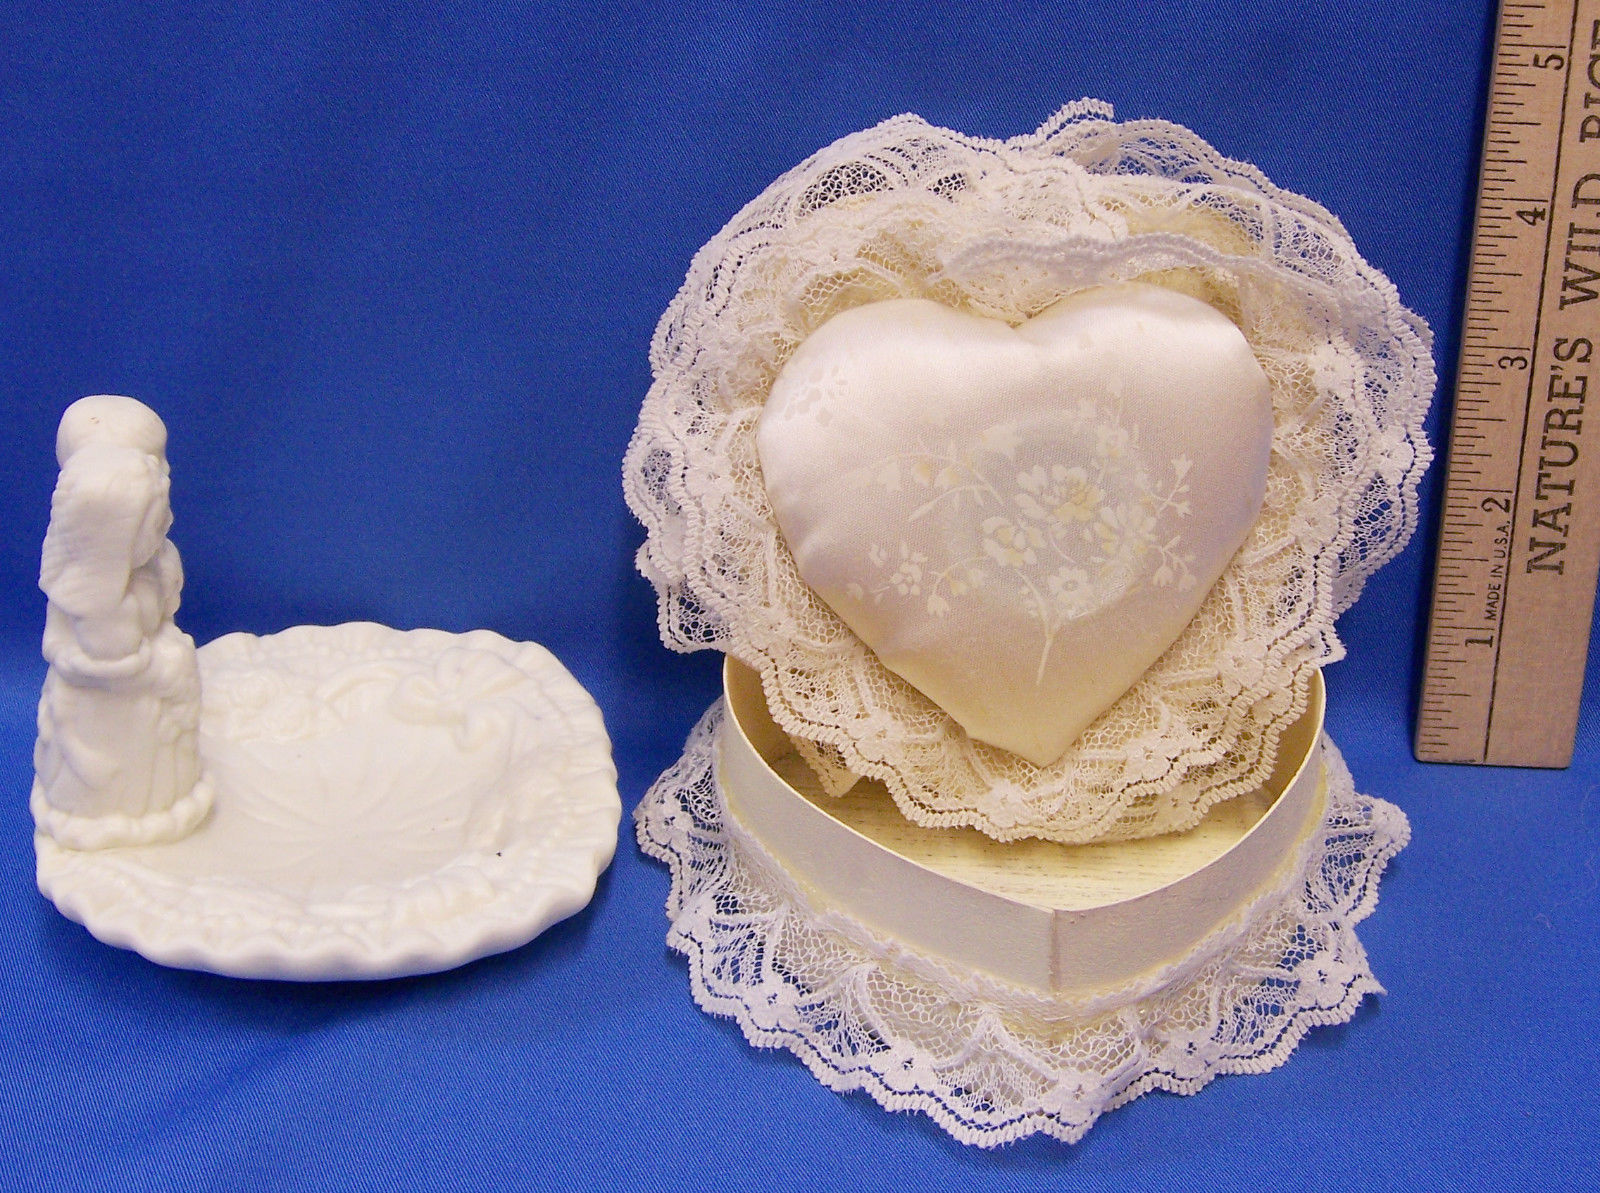 Jade Wedding Couple Ceramic Trinket Dish & Heart Shaped Musical Trinket Box